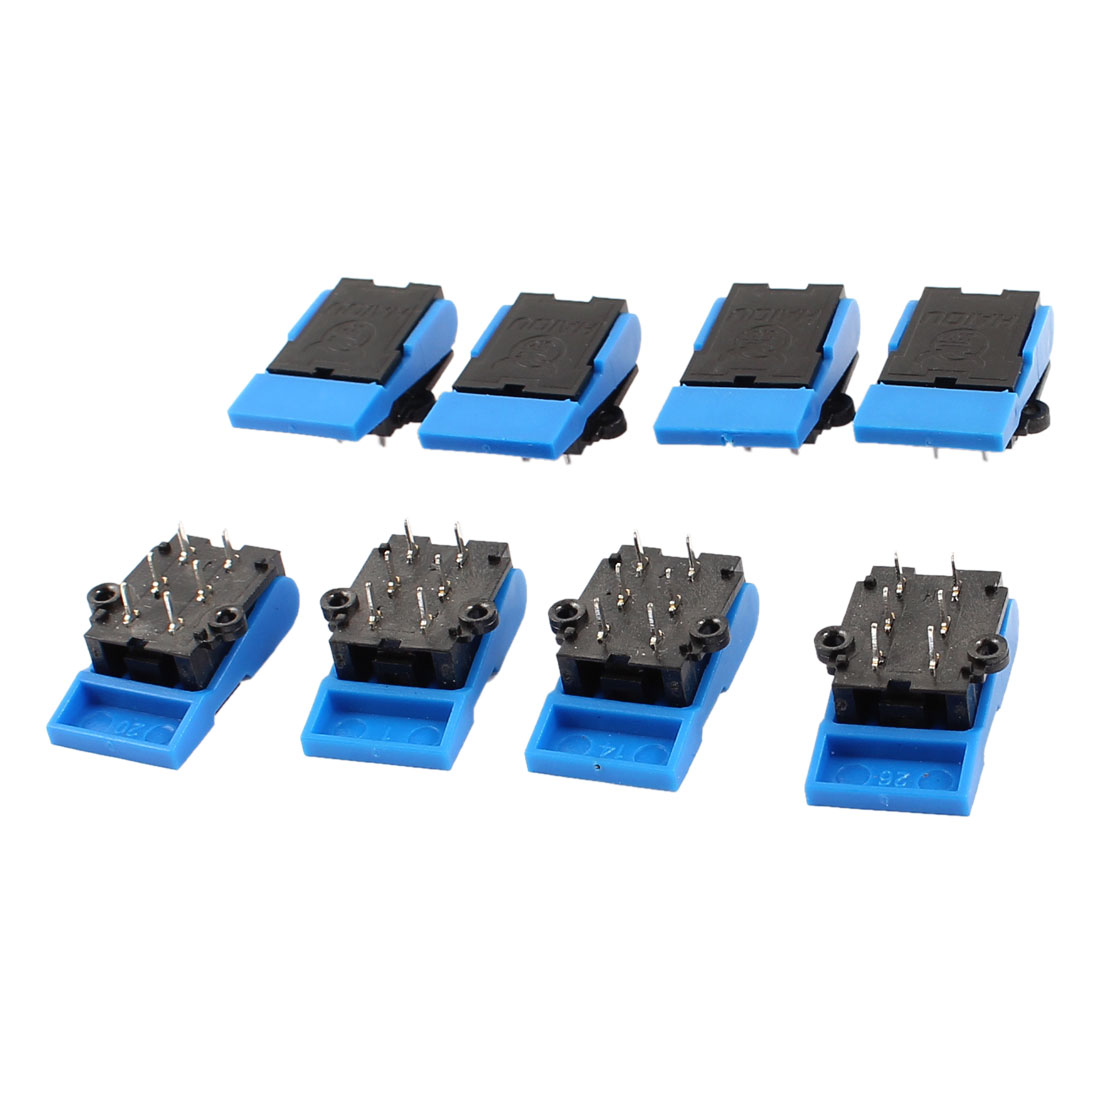 8pcs 6 Pin Terminal PCB Mounting Telephone Hook Switch Black Blue